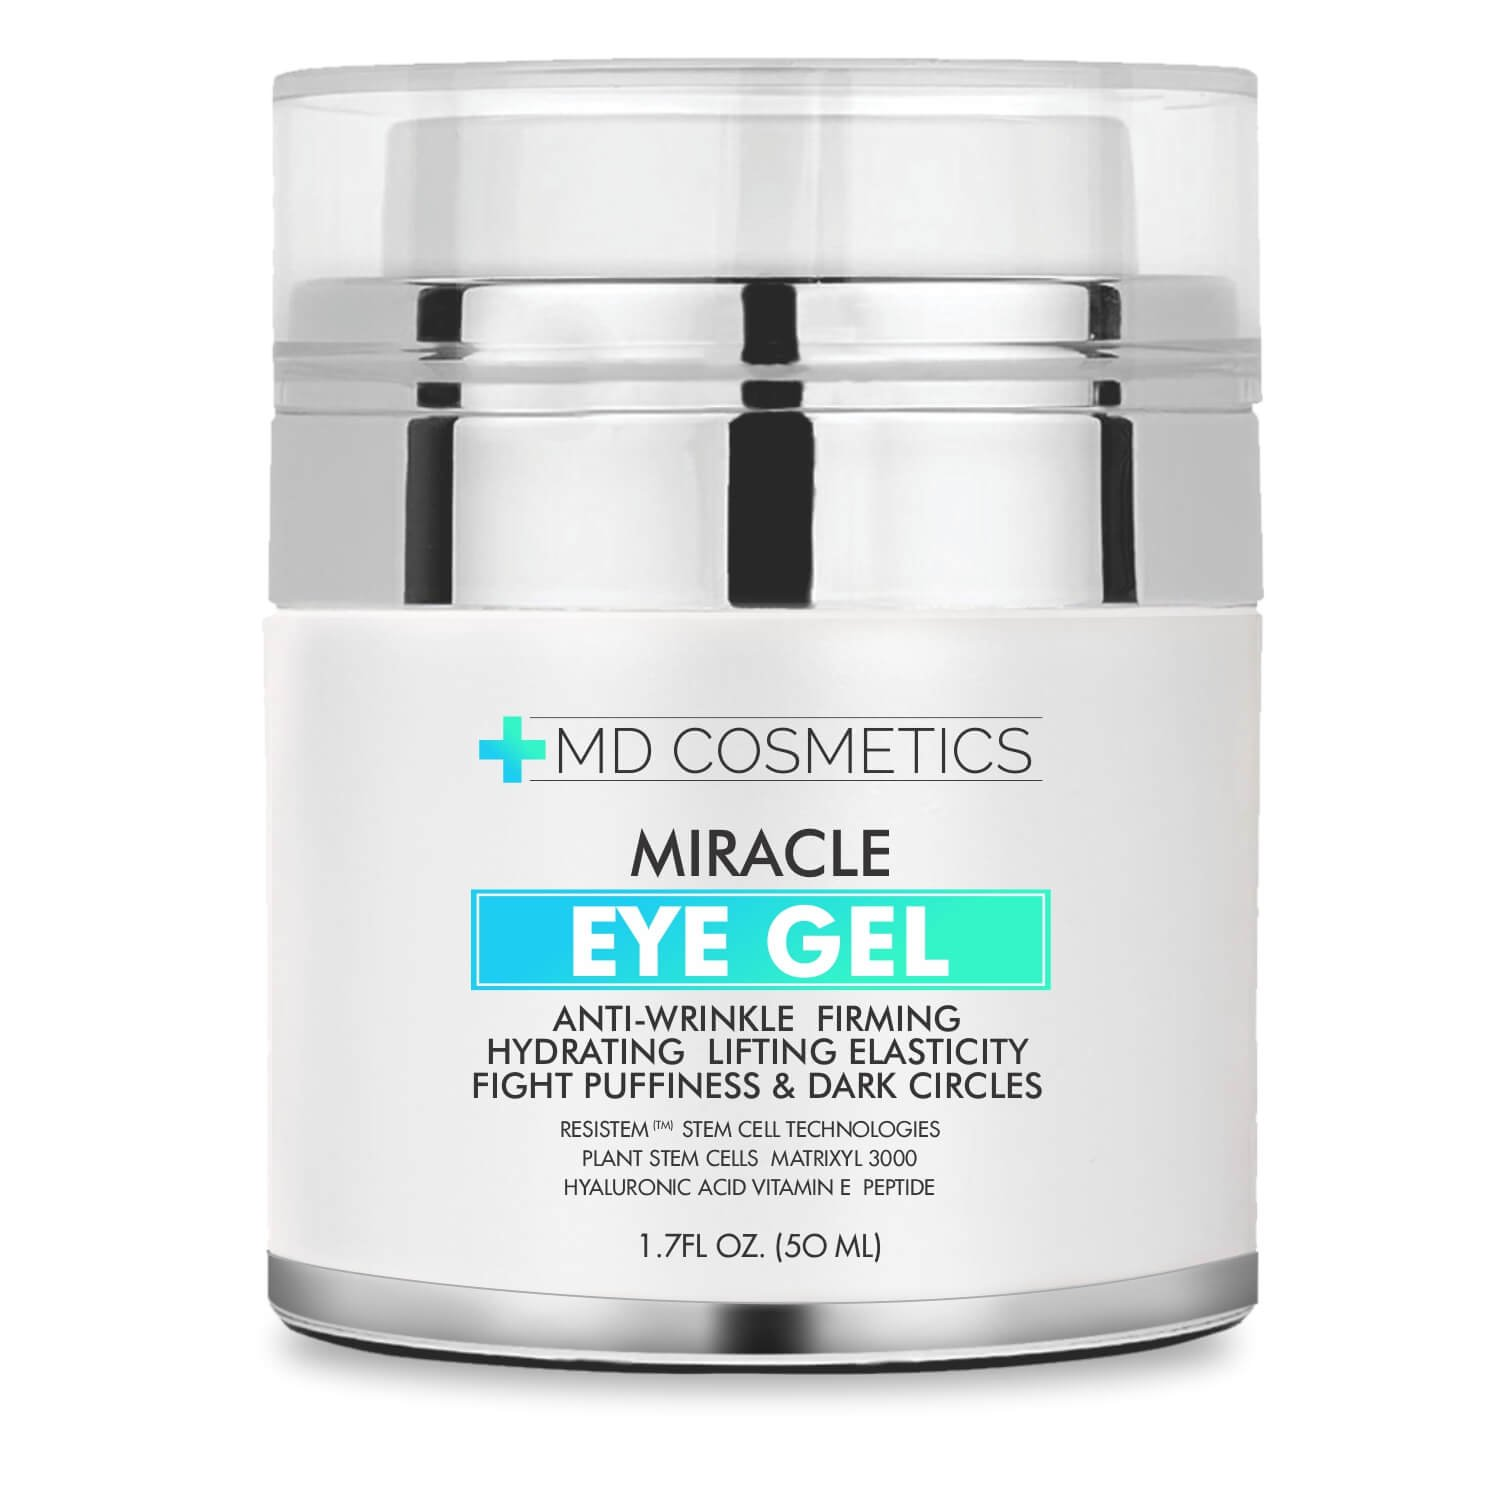 NEW FORMULA FOR 2018! MD Cosmetics Eye Gel for Dark Circles, Puffiness, Wrinkles and Bags. - The Most Effective Anti-Aging Eye Gel for Under and Around Eyes - 1.7 fl oz